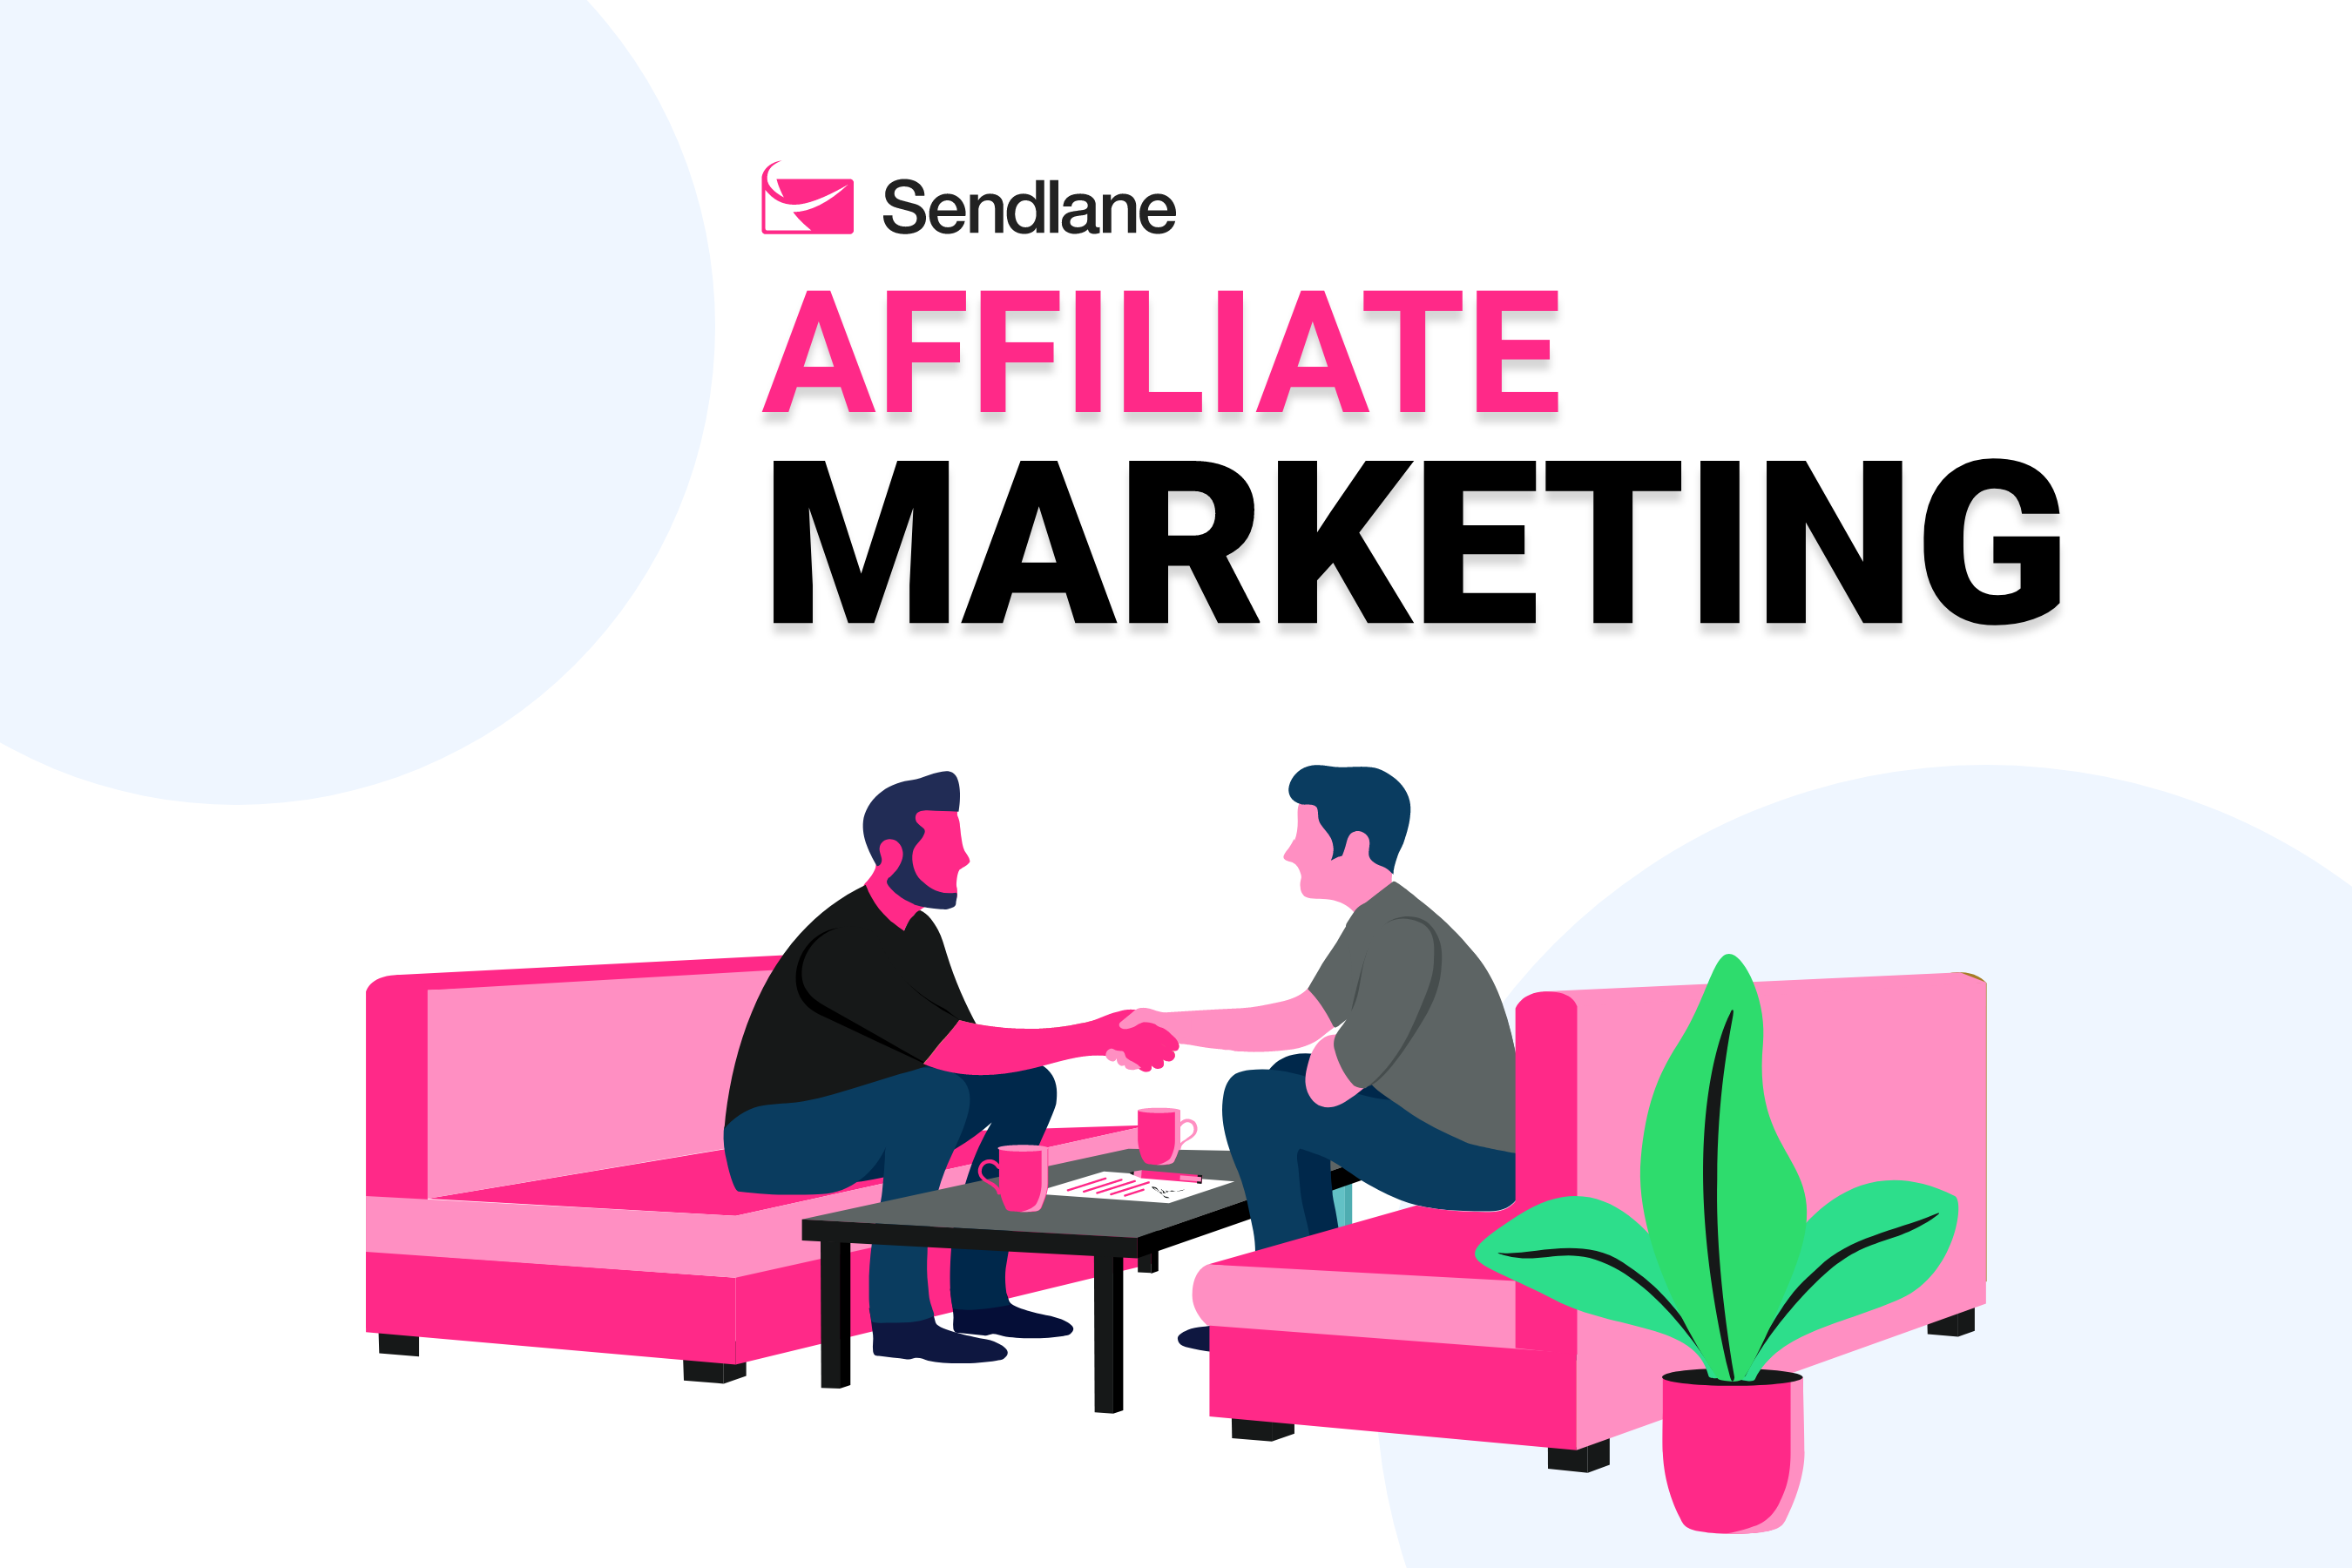 Is Sendlane Affiliate Marketing Friendly?